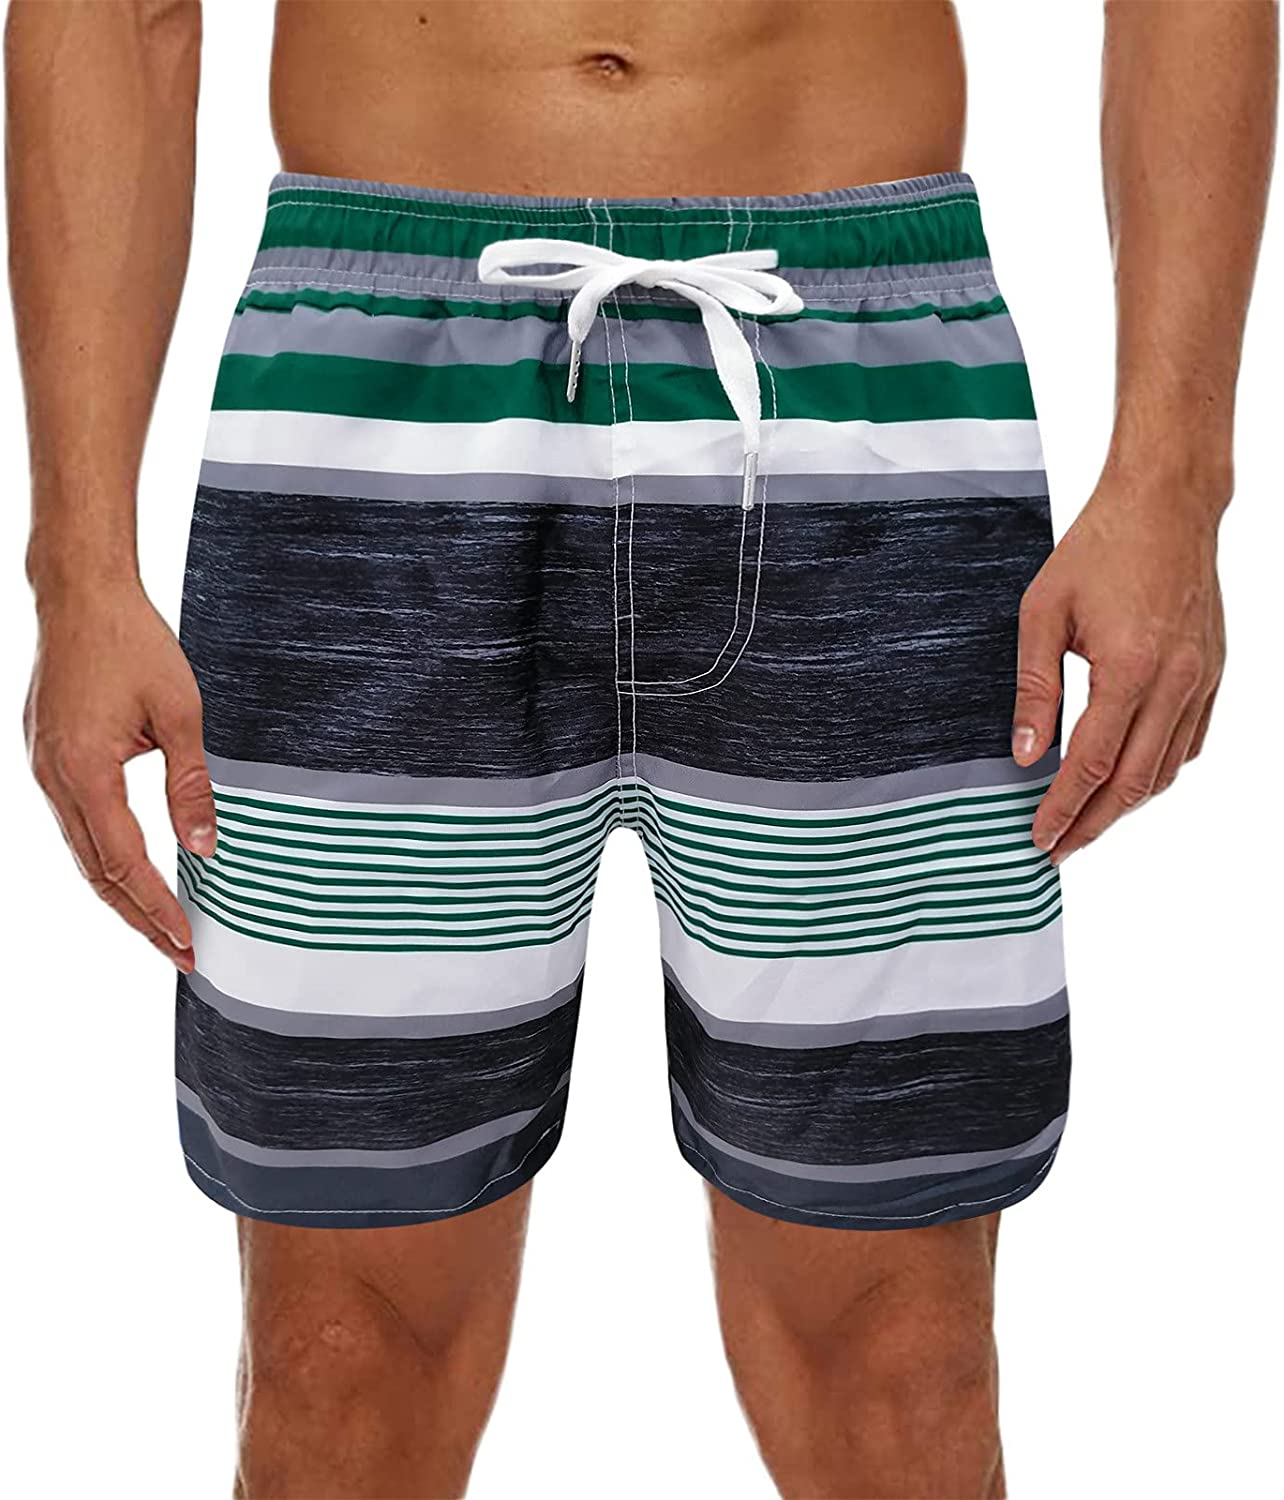 Huangse Men's Hawaiian Summer Striped Beach Shorts Swim Trunks Sports Running Bathing Suits with Mesh Lining with Pockets